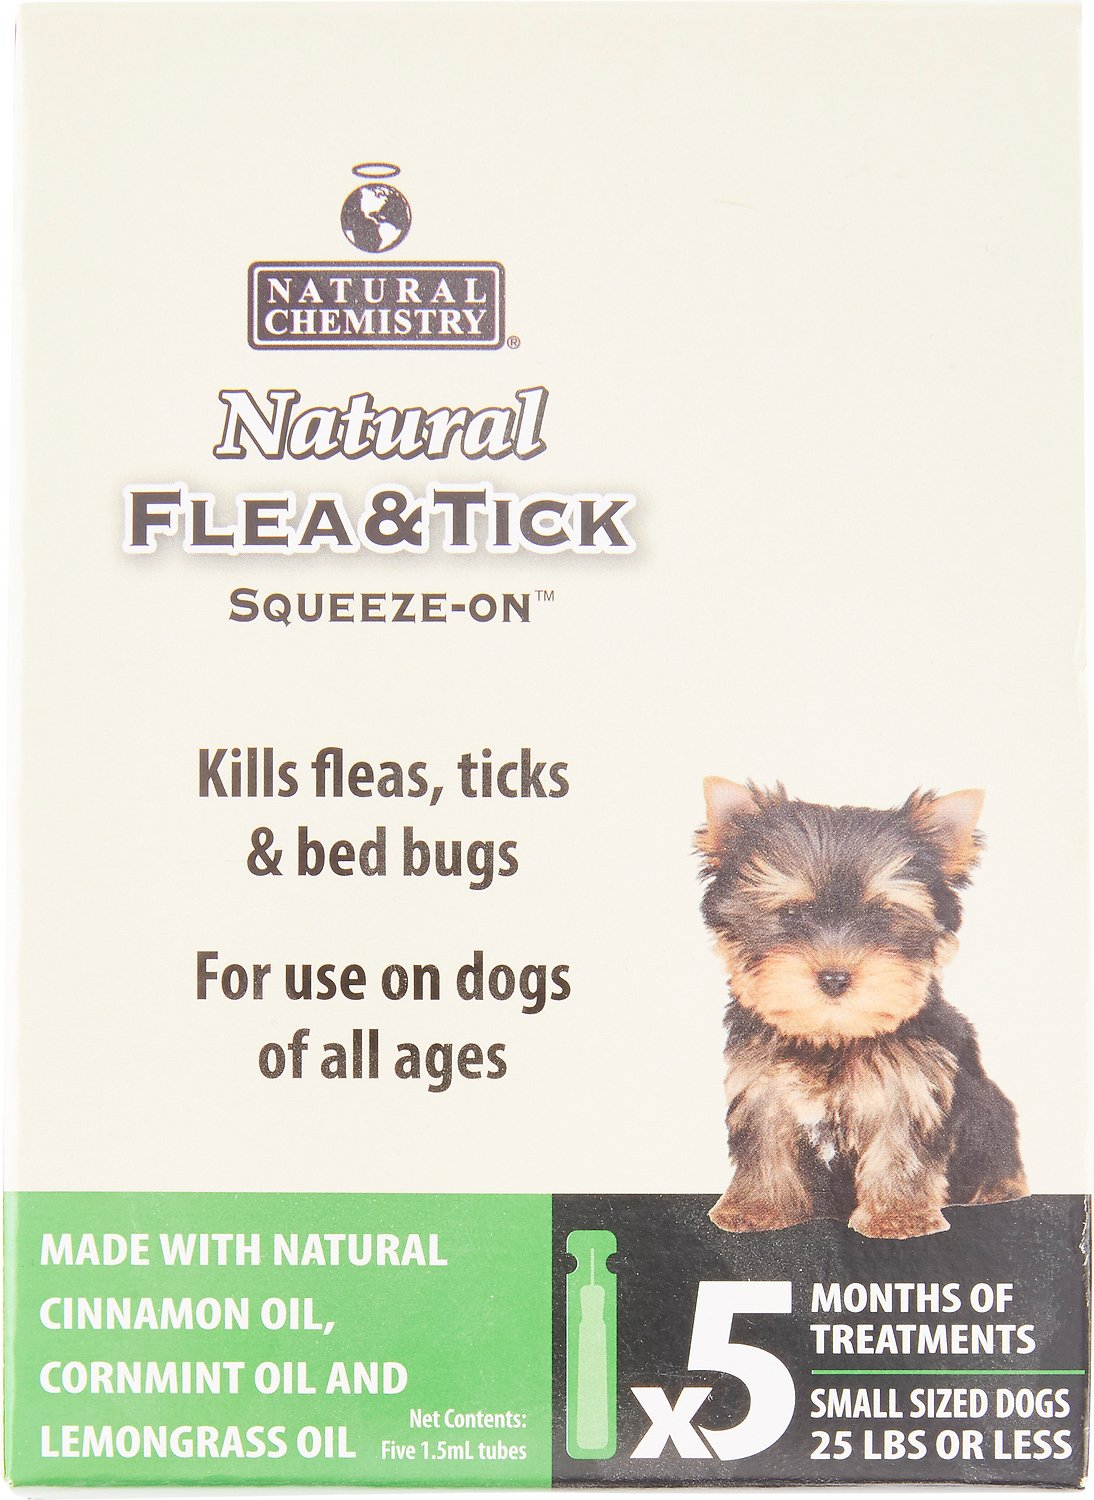 Natural Chemistry Natural Flea Tick Squeeze On For Dogs Small